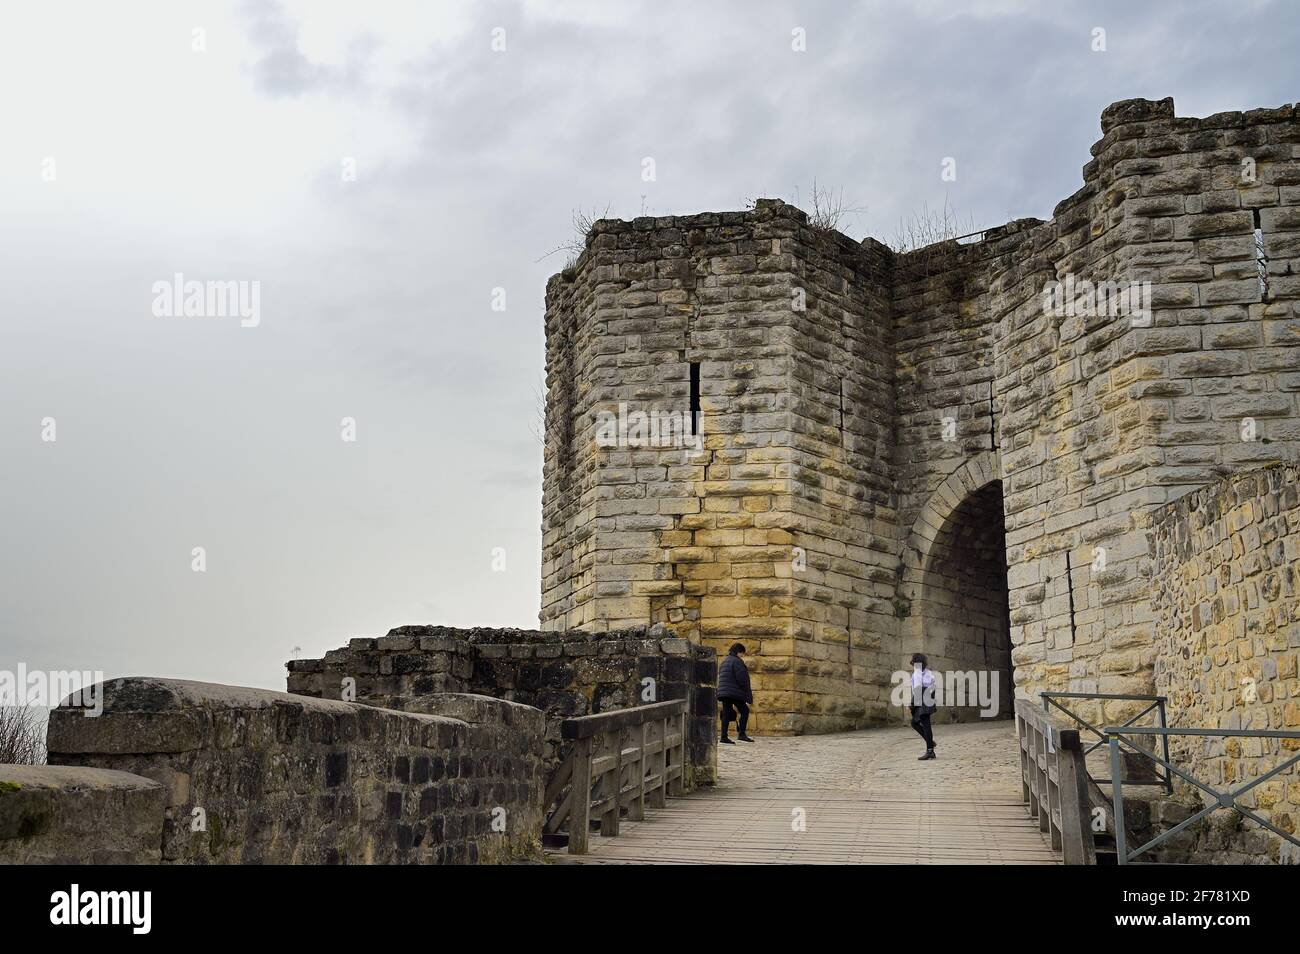 France, Aisne, Château-Thierry, the Saint-Jean gate of the old castle Stock Photo